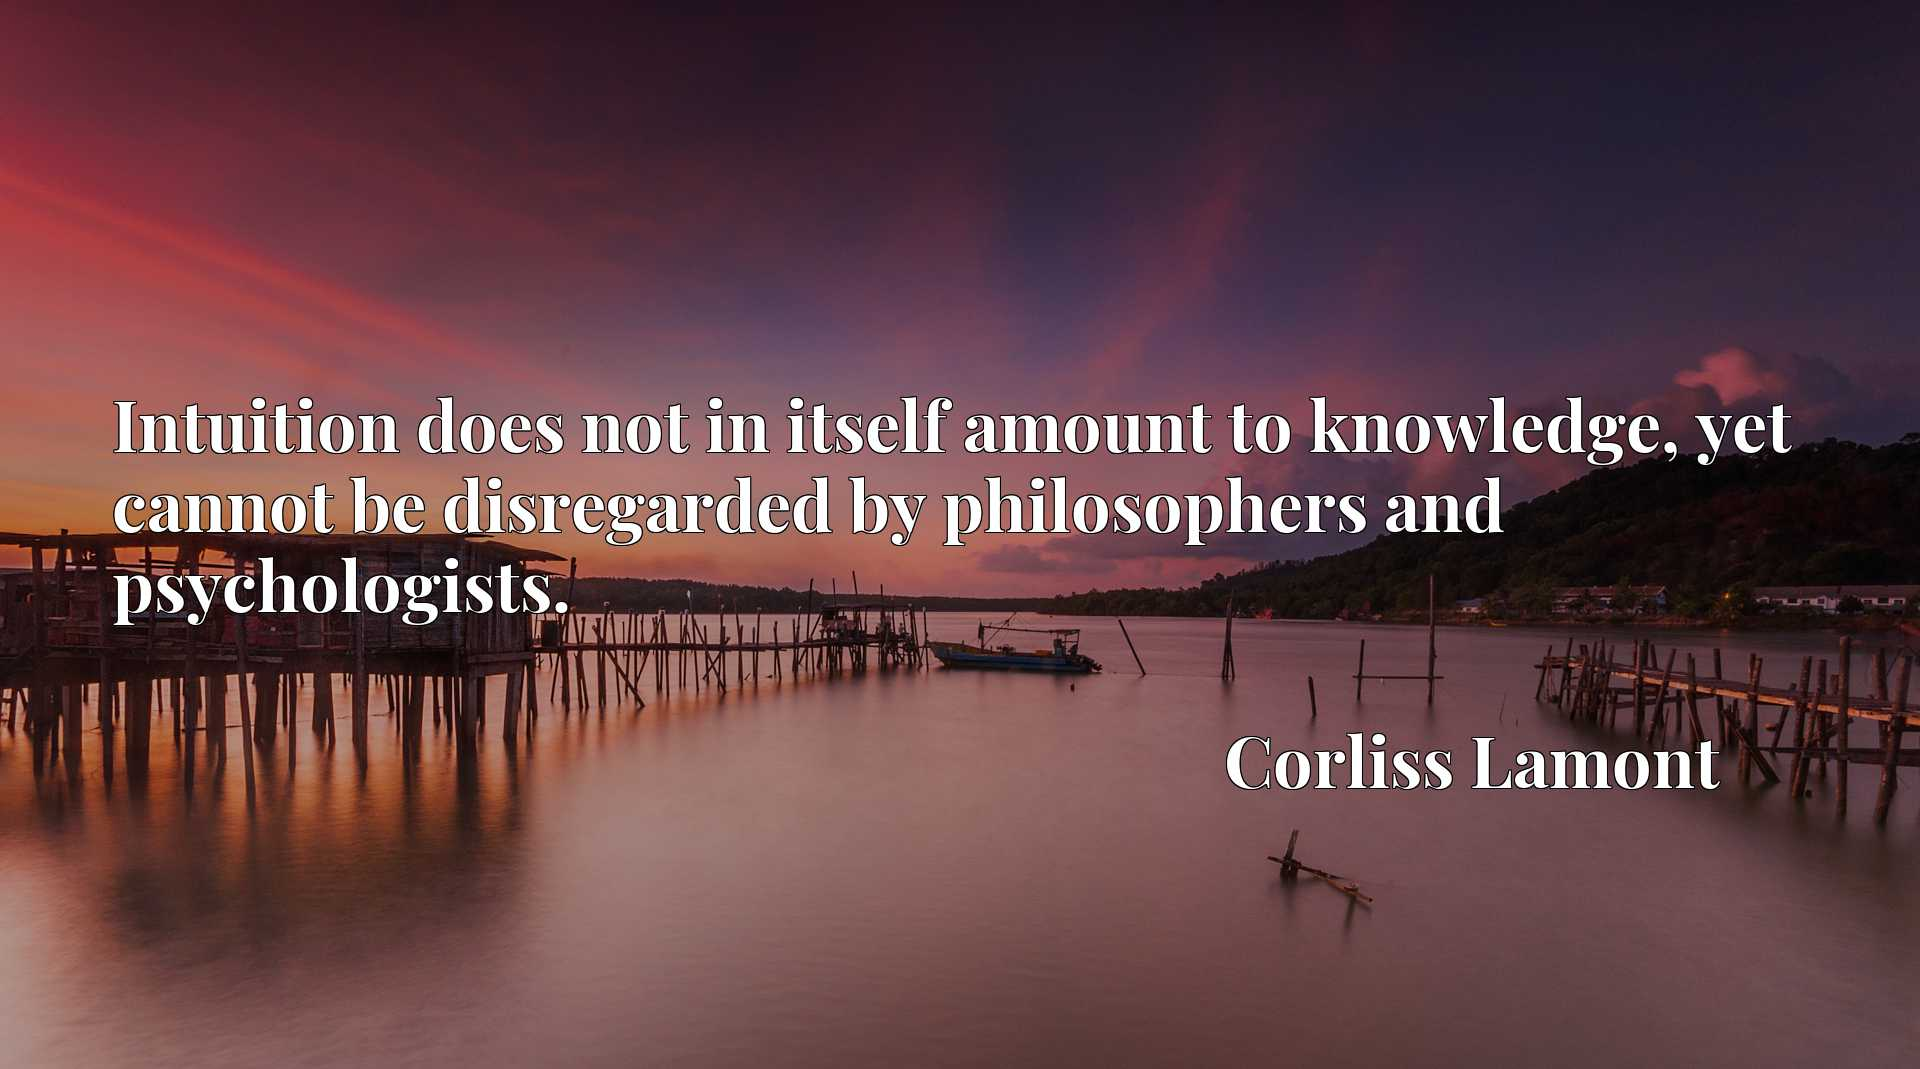 Intuition does not in itself amount to knowledge, yet cannot be disregarded by philosophers and psychologists.